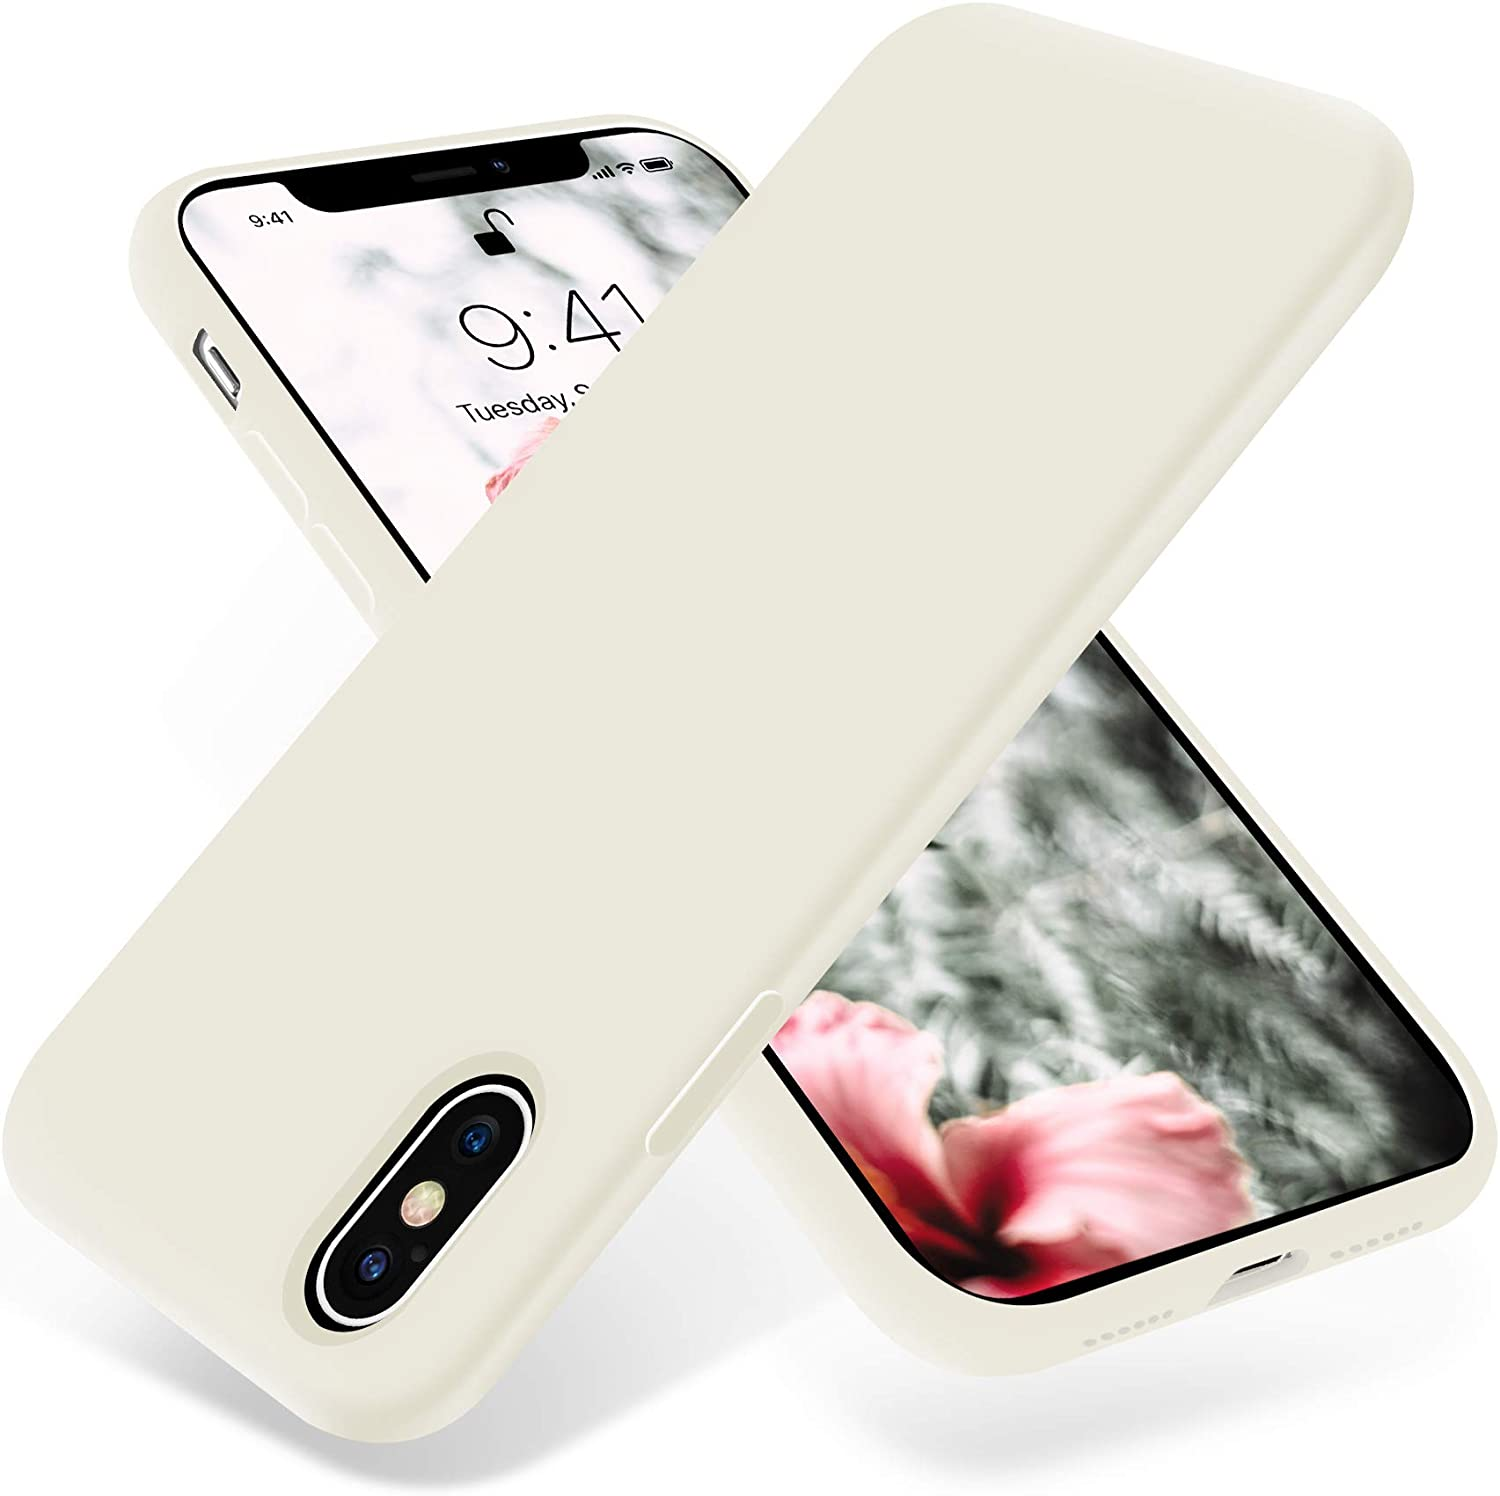 OTOFLY Liquid Silicone Gel Rubber Full Body Protection Shockproof Case for iPhone Xs/iPhone X,Anti-Scratch&Fingerprint Basic-Cases,Compatible with iPhone X/iPhone Xs 5.8 inch (2018), (Antique White)